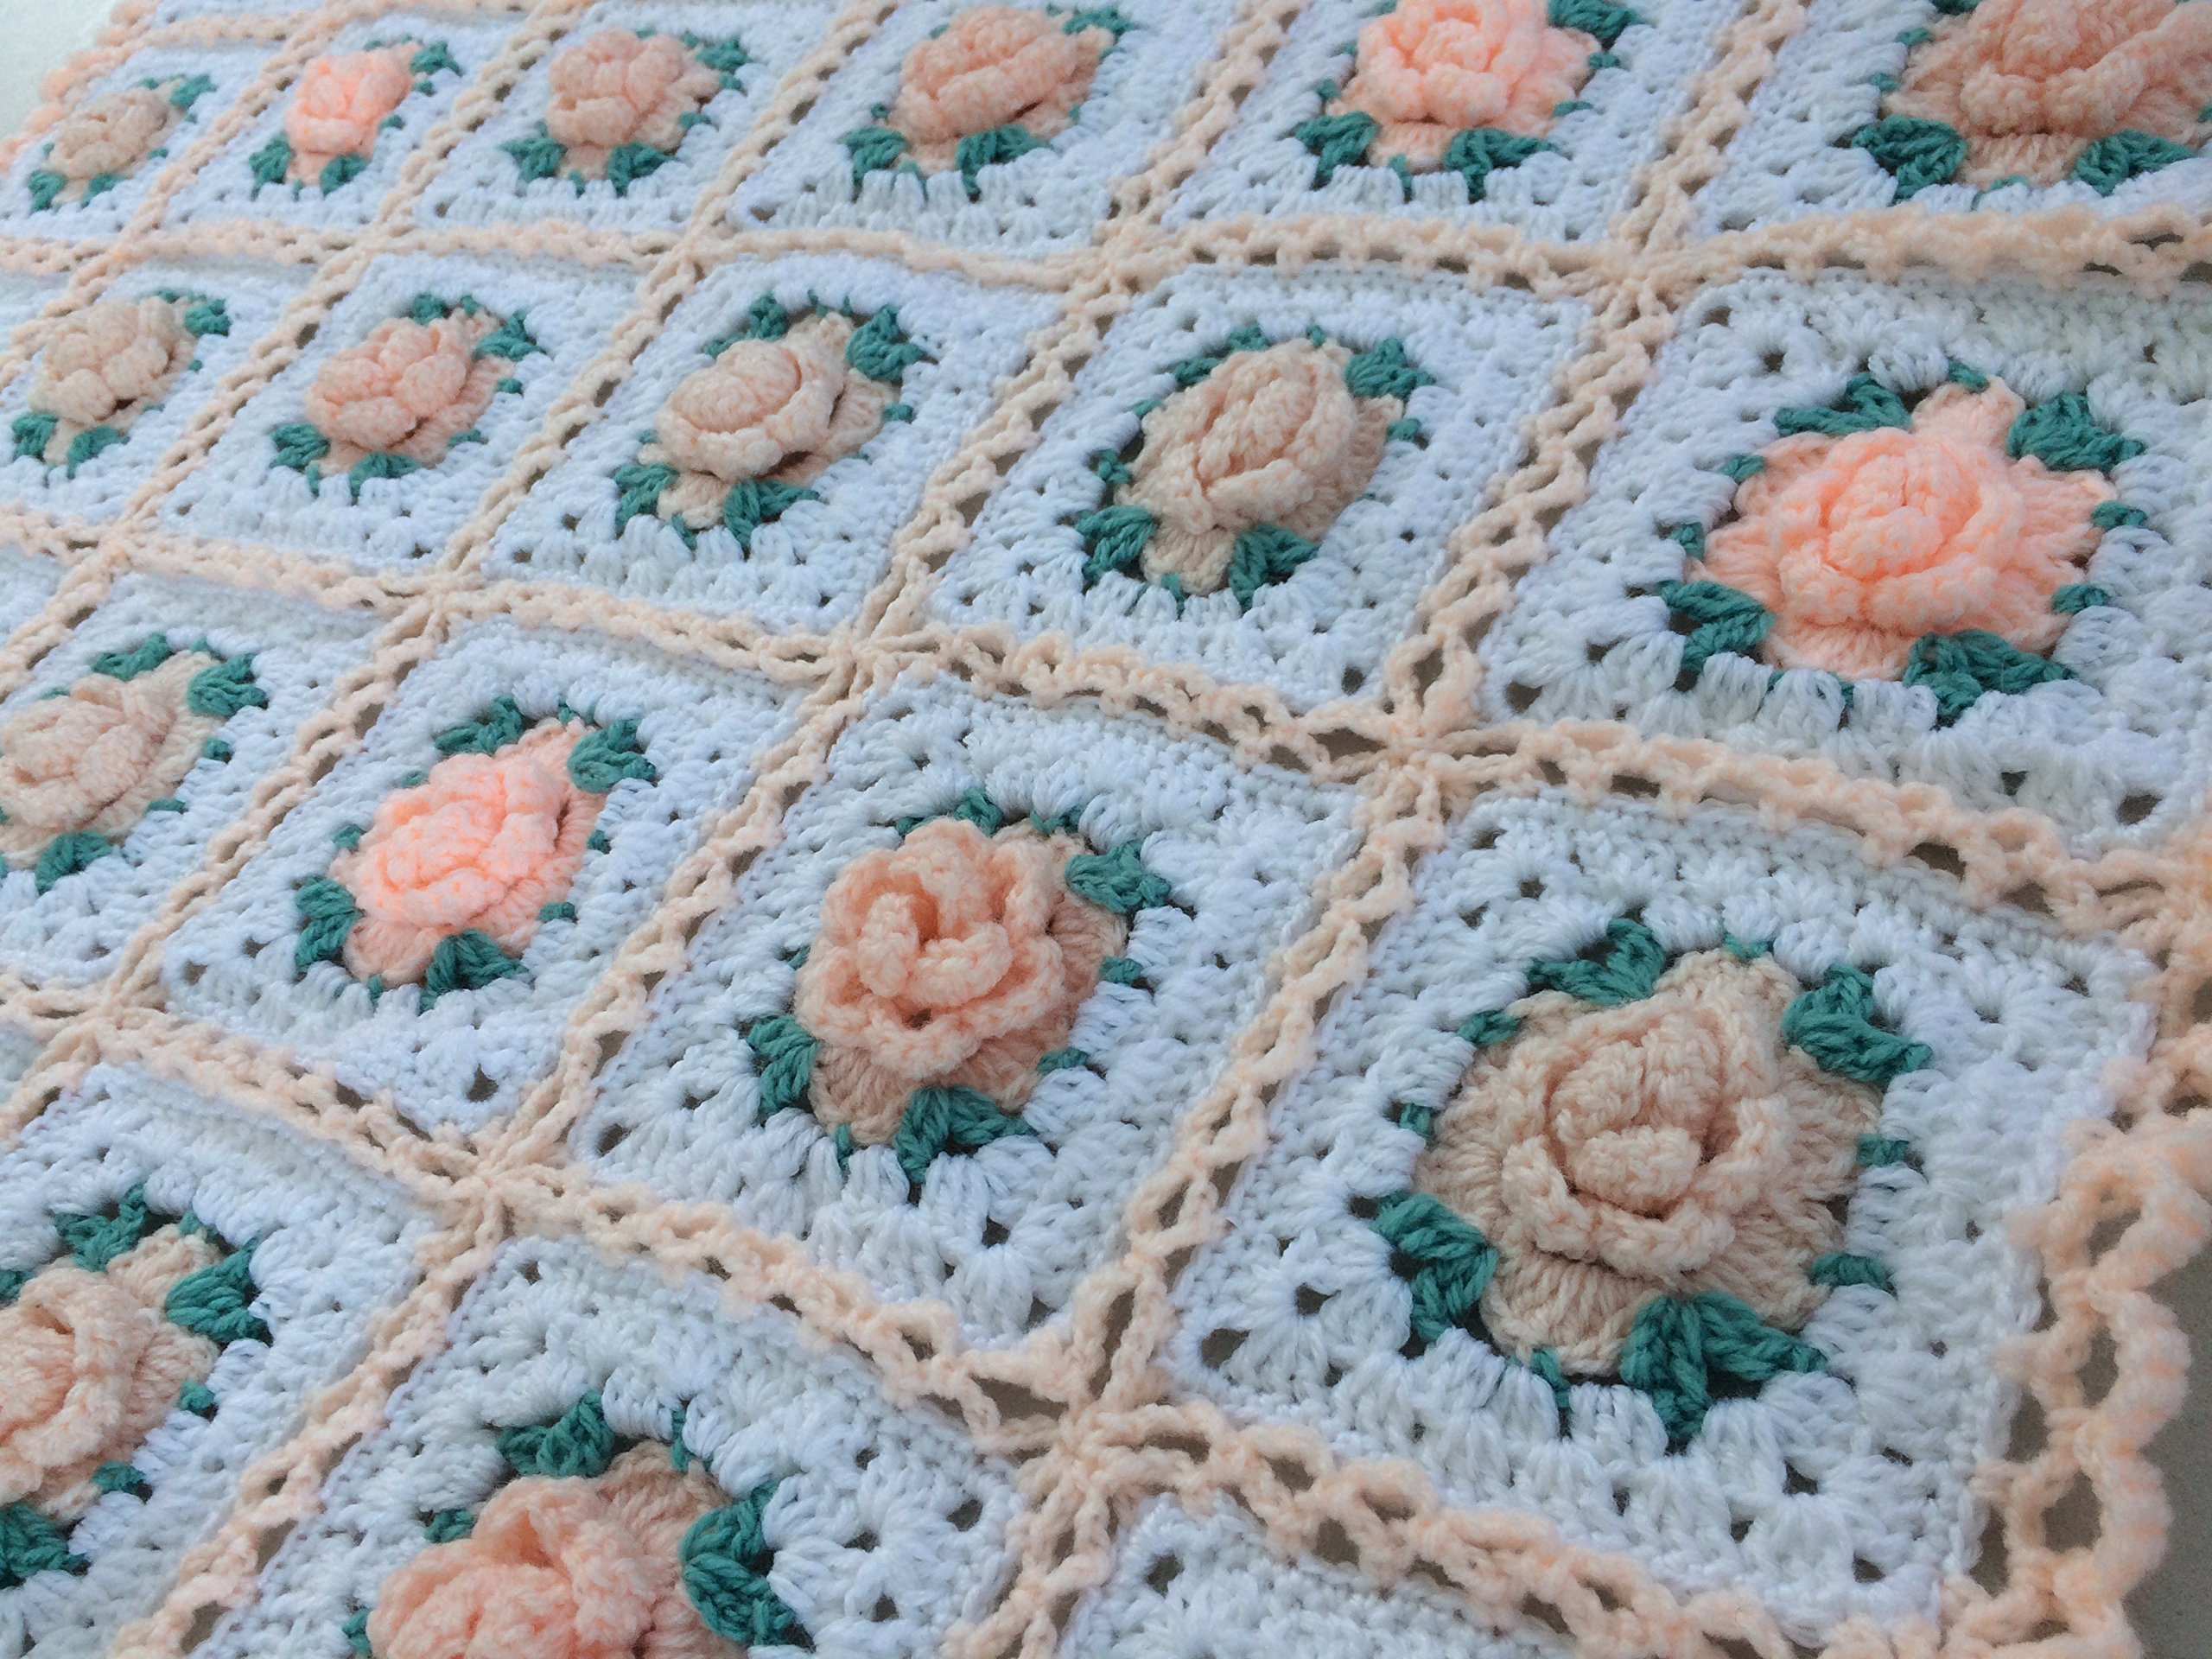 Baby Blanket. Crocheted Blanket. Baby Afghan. Shabby Chic Granny Square Baby Blanket with 3 Dimensional Roses.